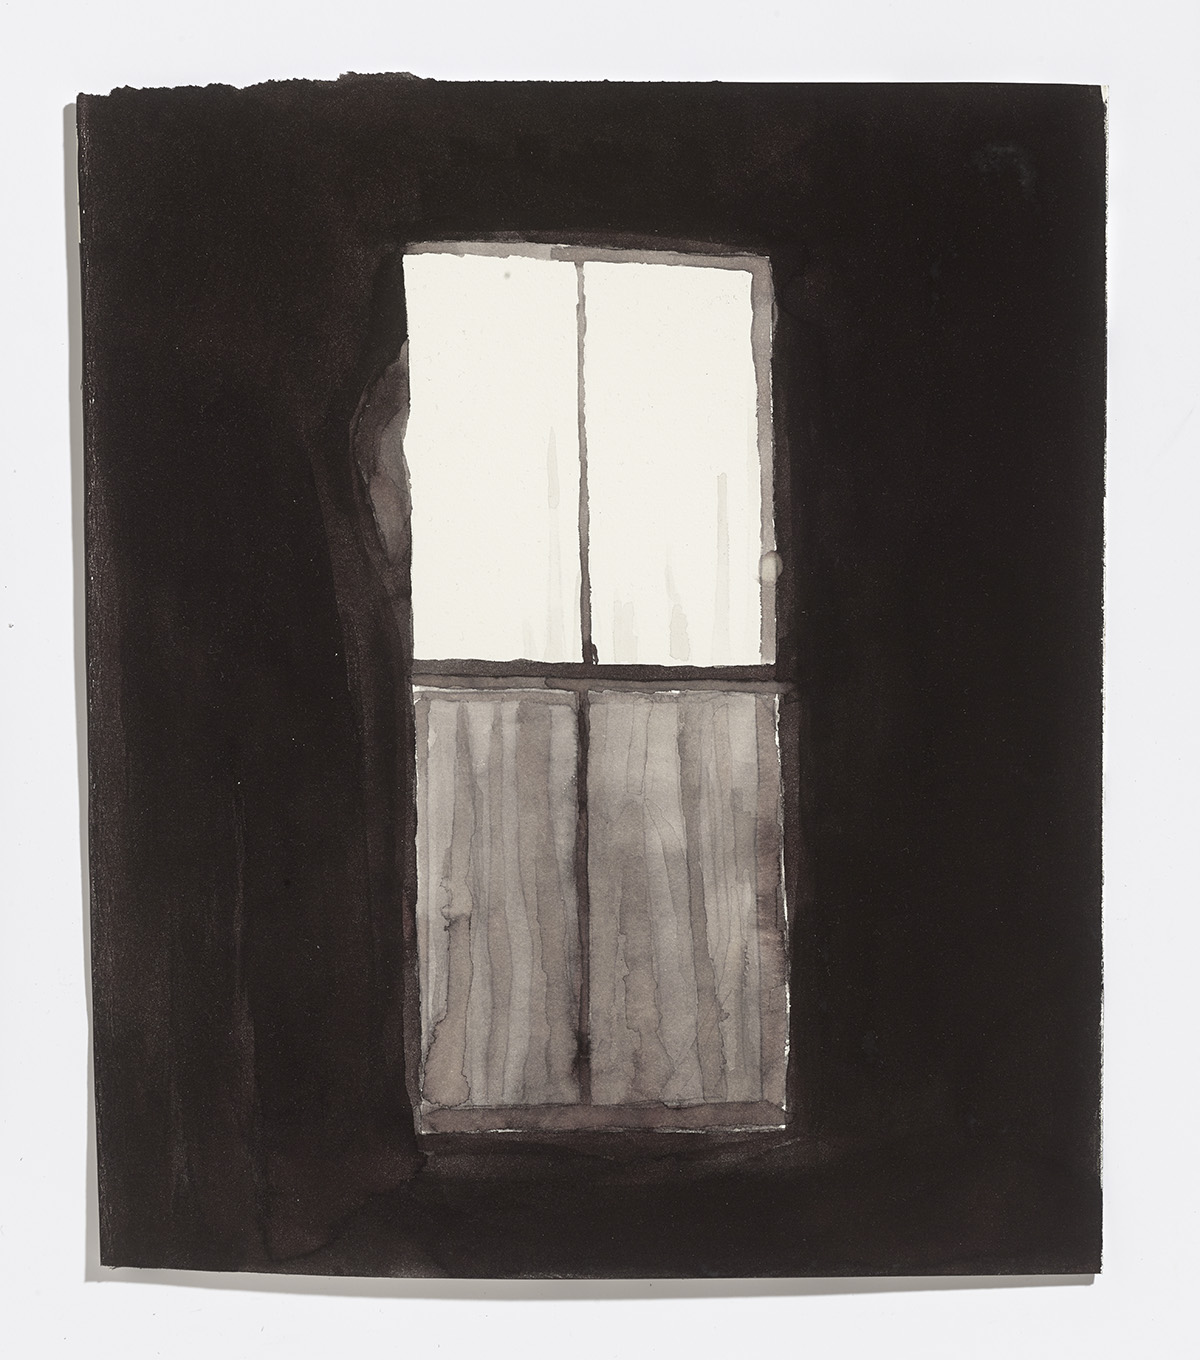 Closed window,2017,ink on paper, 13.25 x 11.25 in